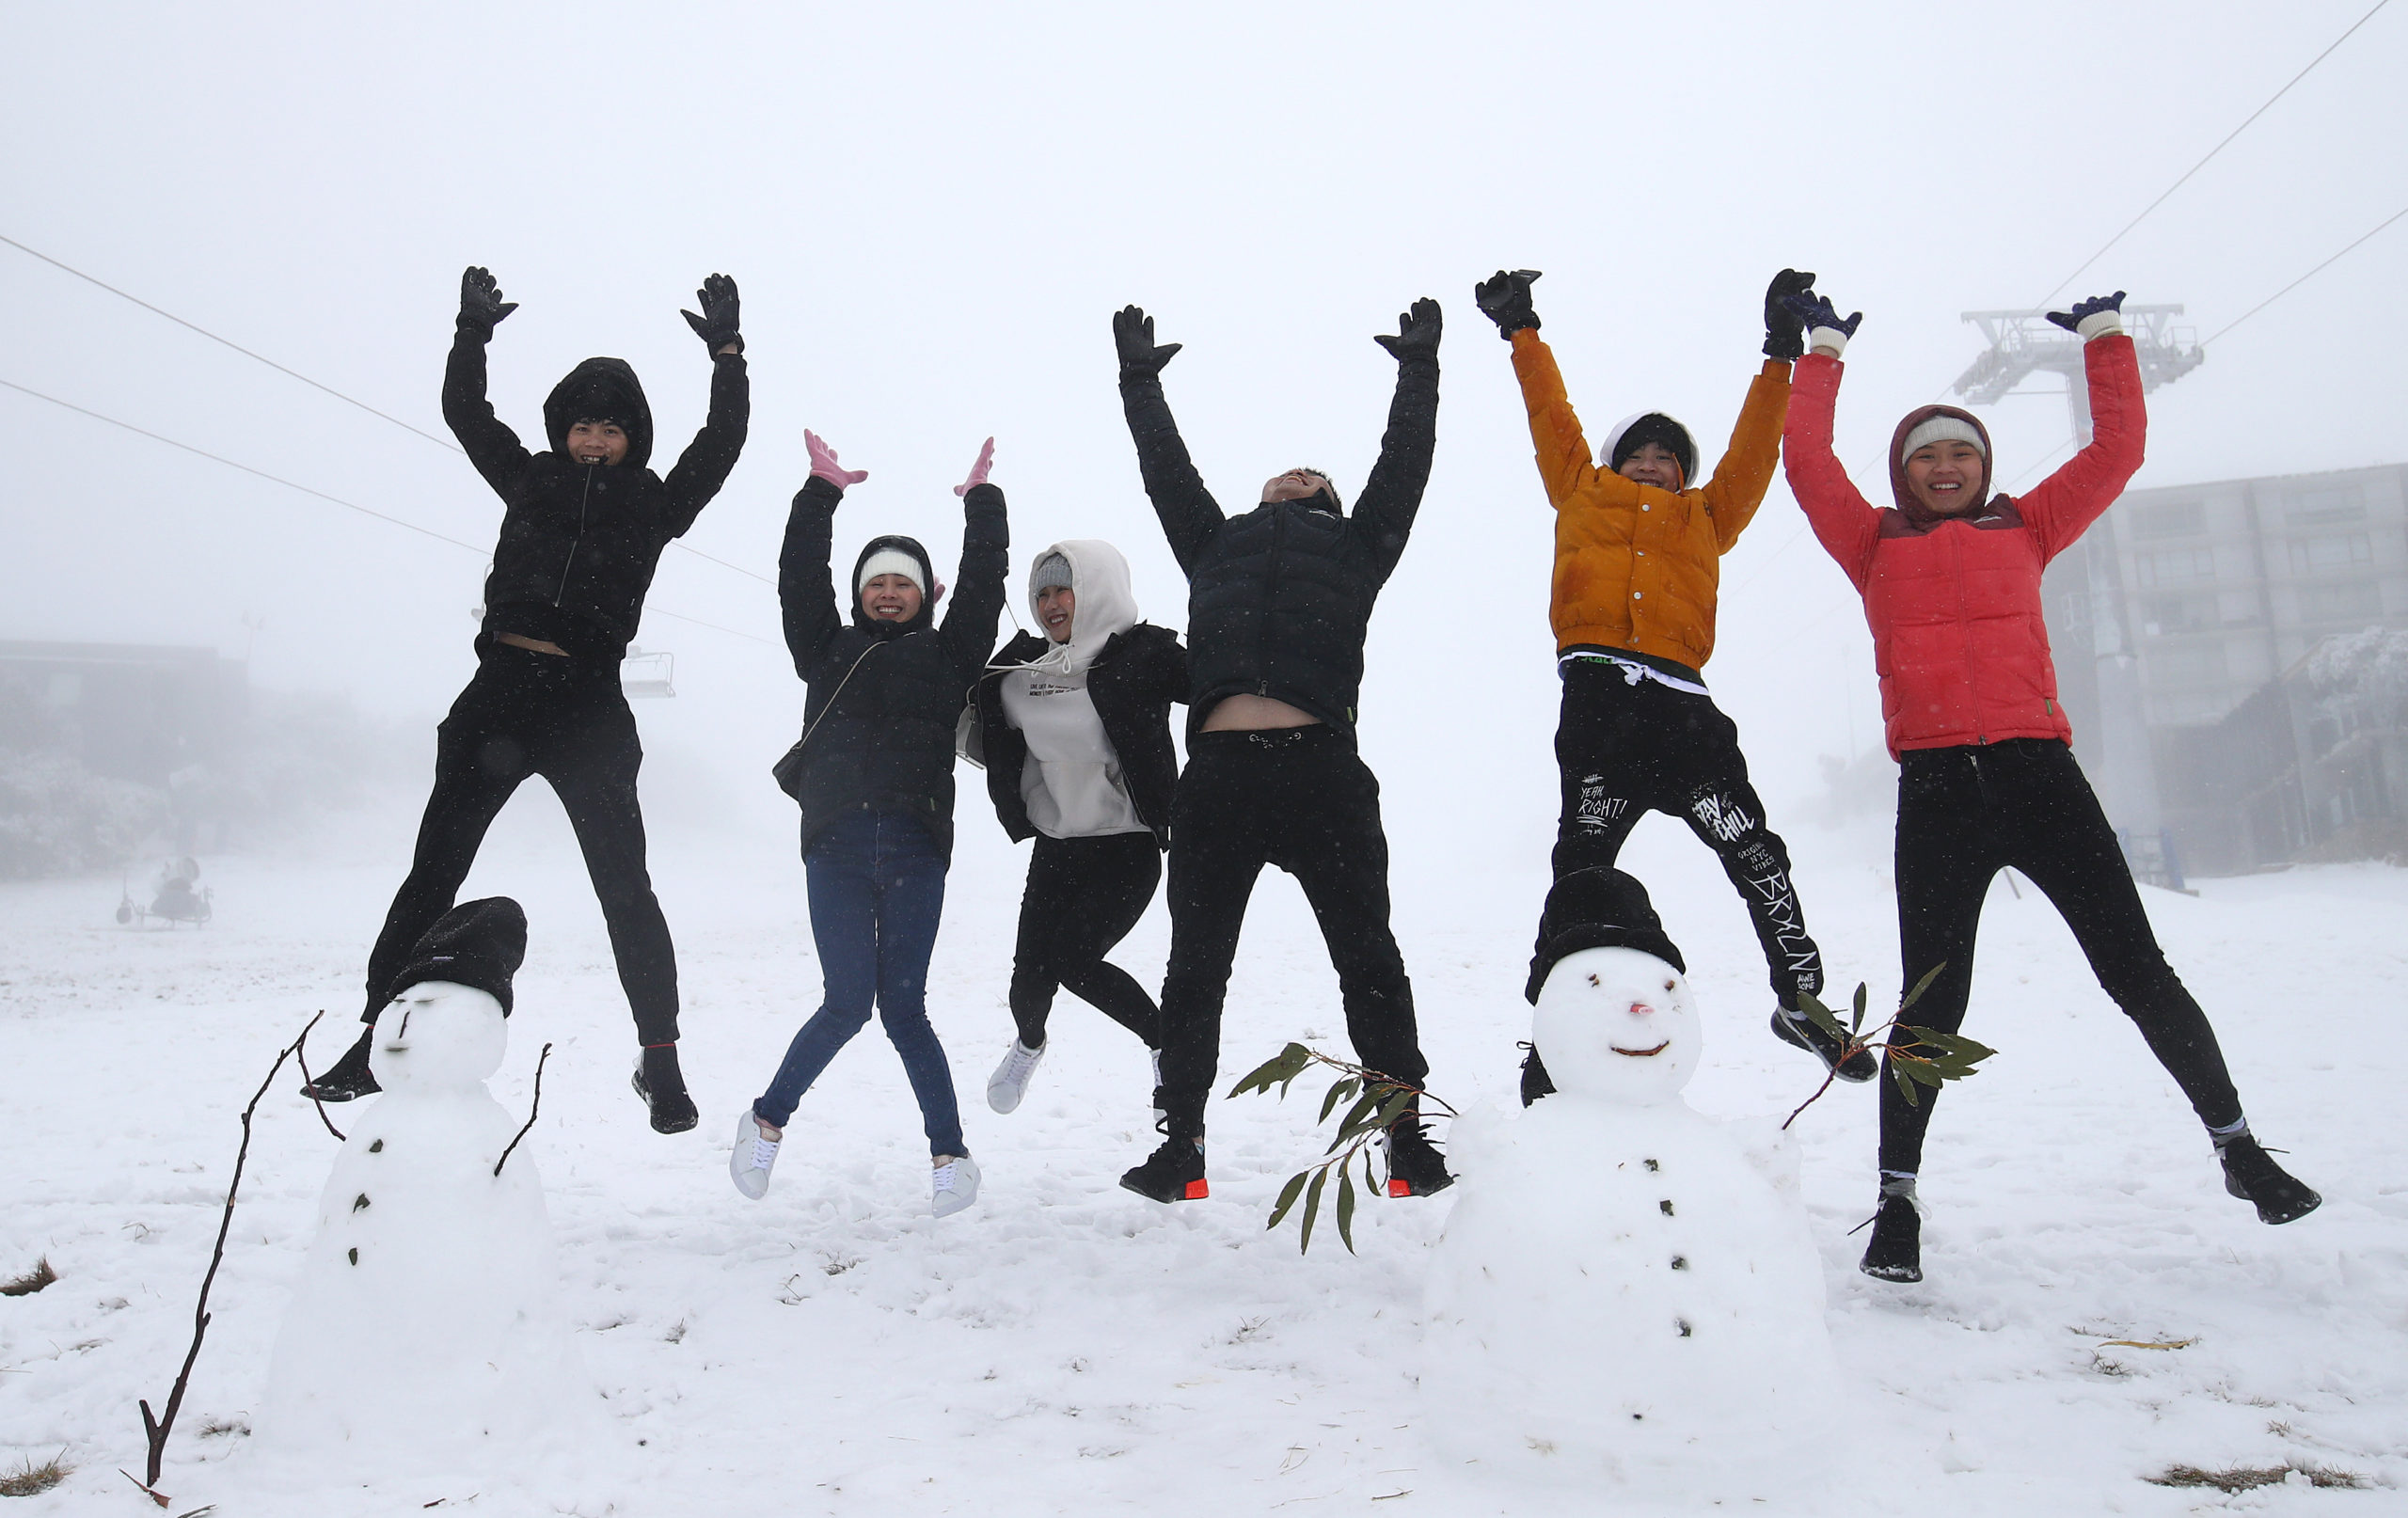 group of skiers jumping in air